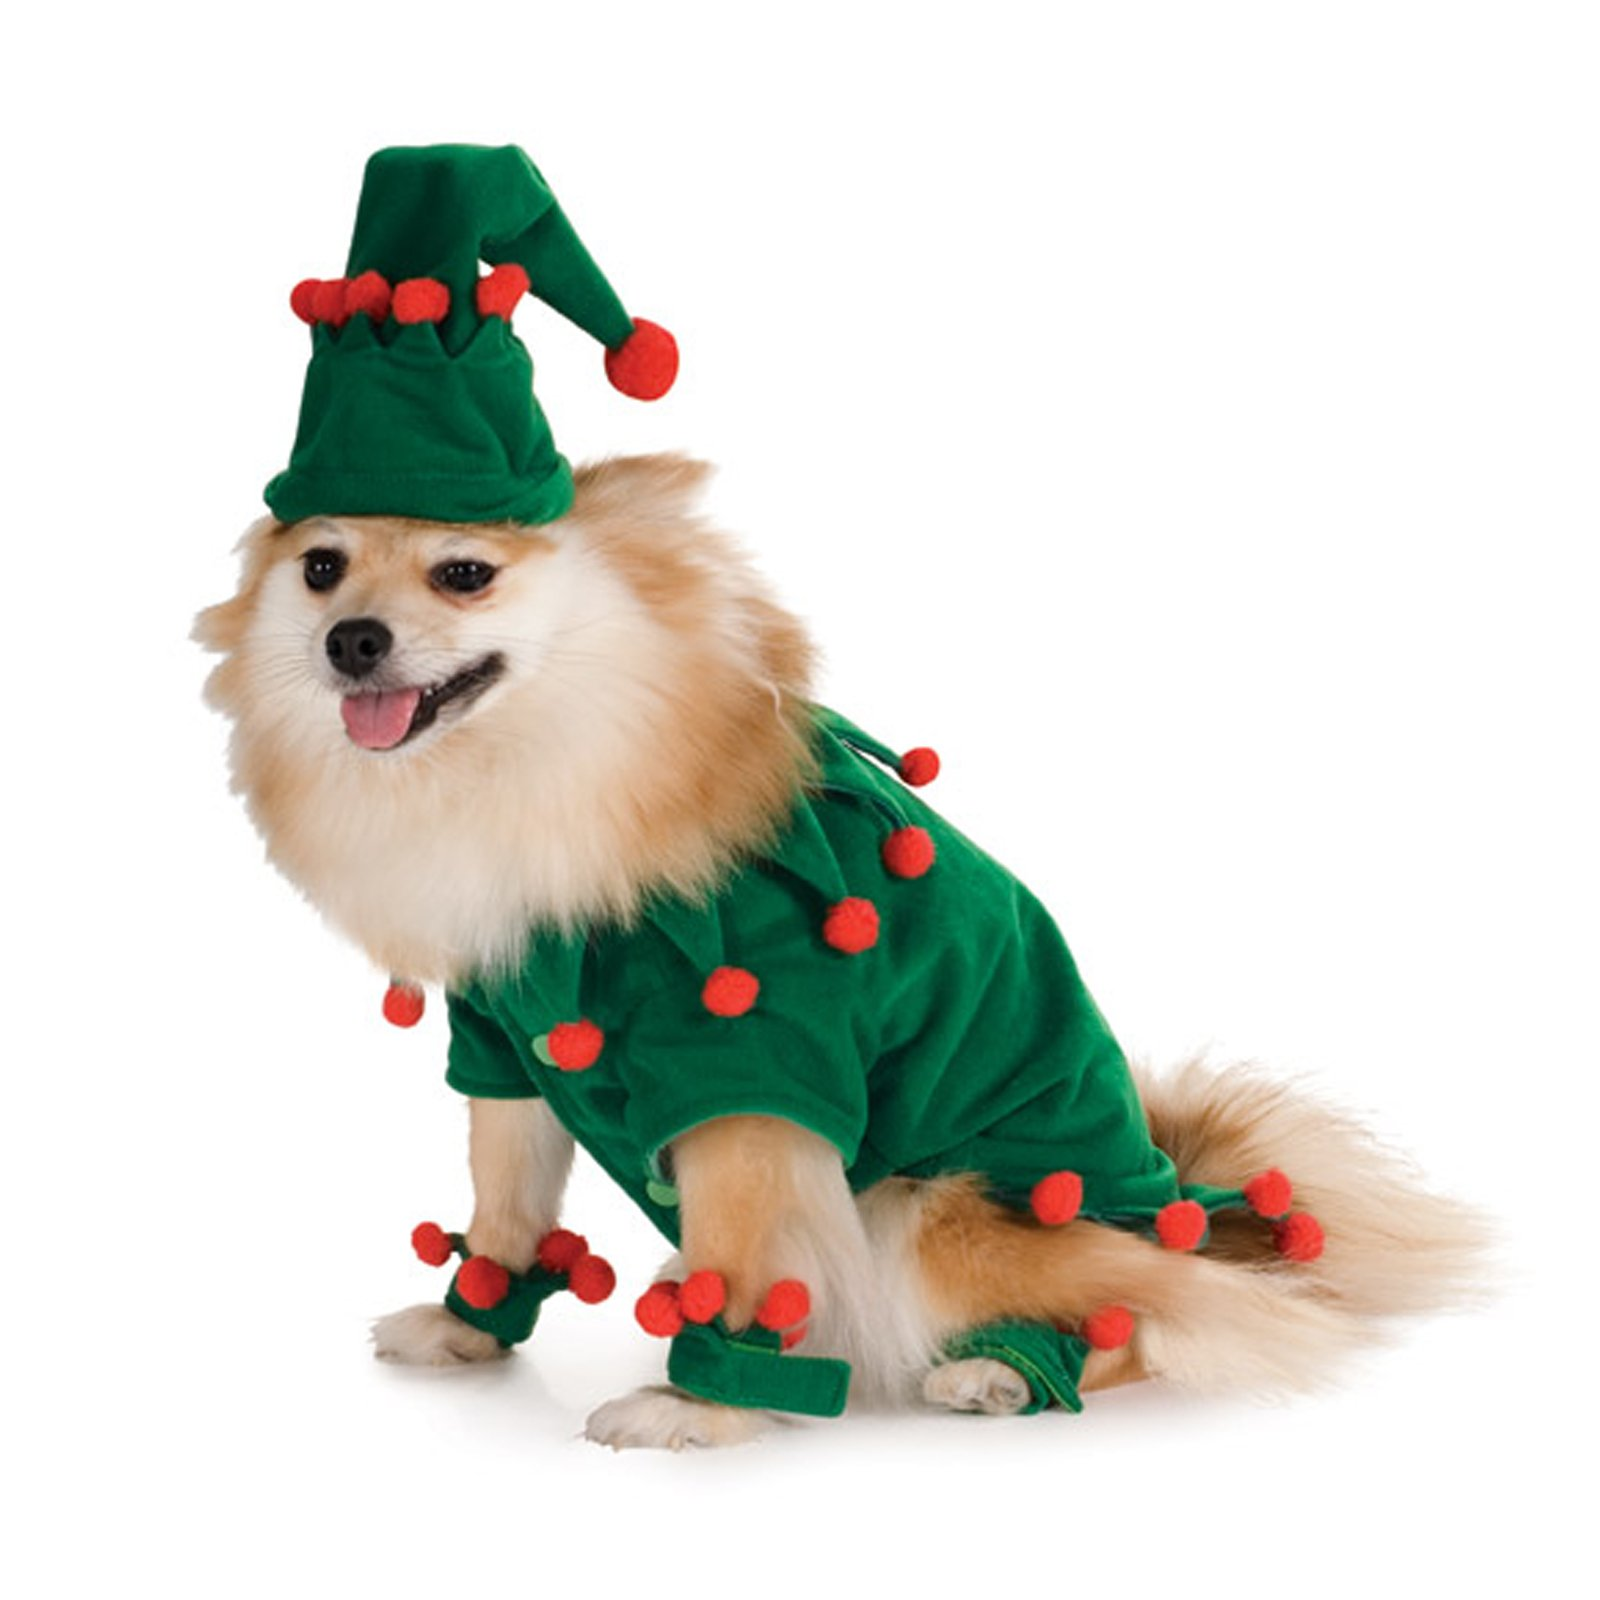 Pet Christmas Costume photo - 1